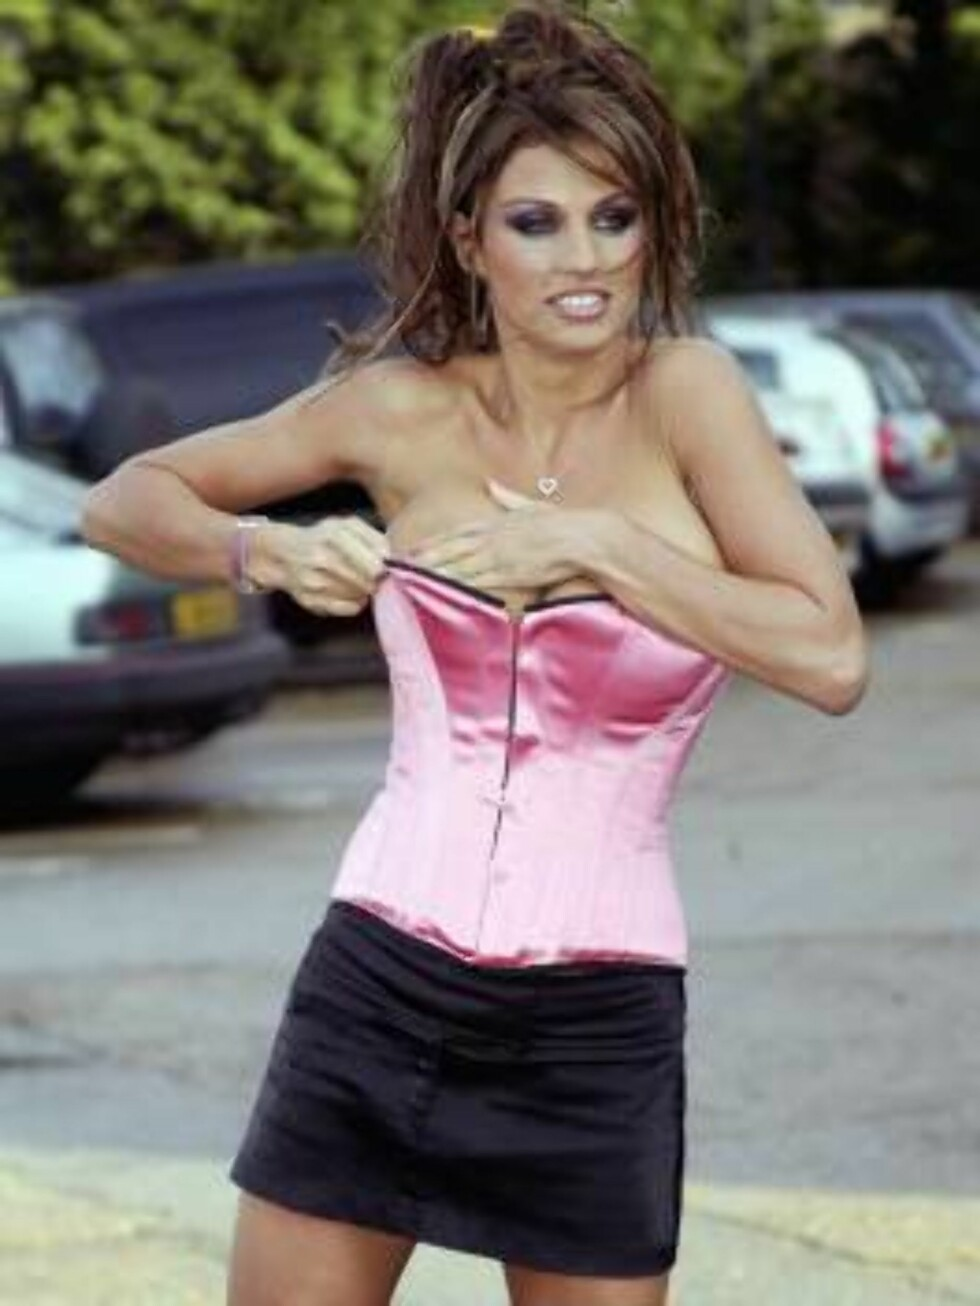 LONDON - JANUARY 27:  Glamour model Jordan promotes her acting debut in Sky One's soap Dream Team London,  January 27, 2003. Appearing in her first ever cameo role, Jordan joins a long line of celebrities from the world of football and showbiz that have a Foto: All Over Press